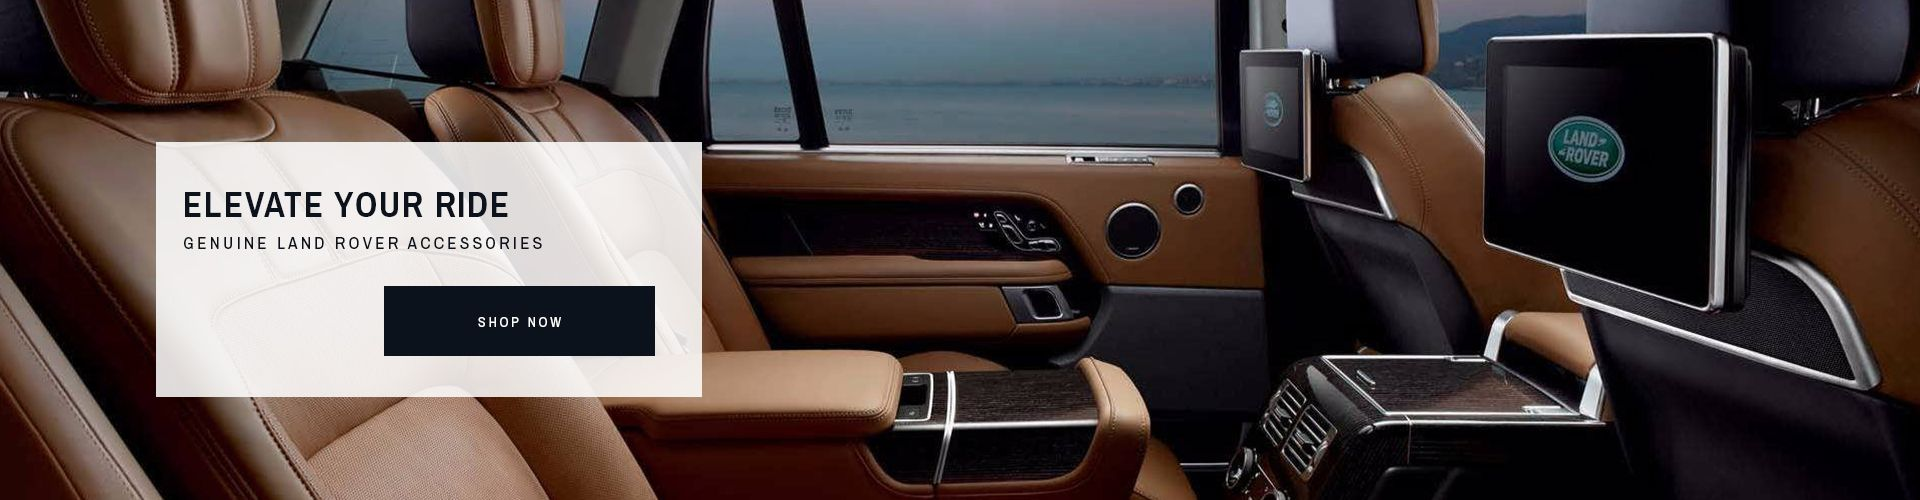 OE Land Rover Accessories